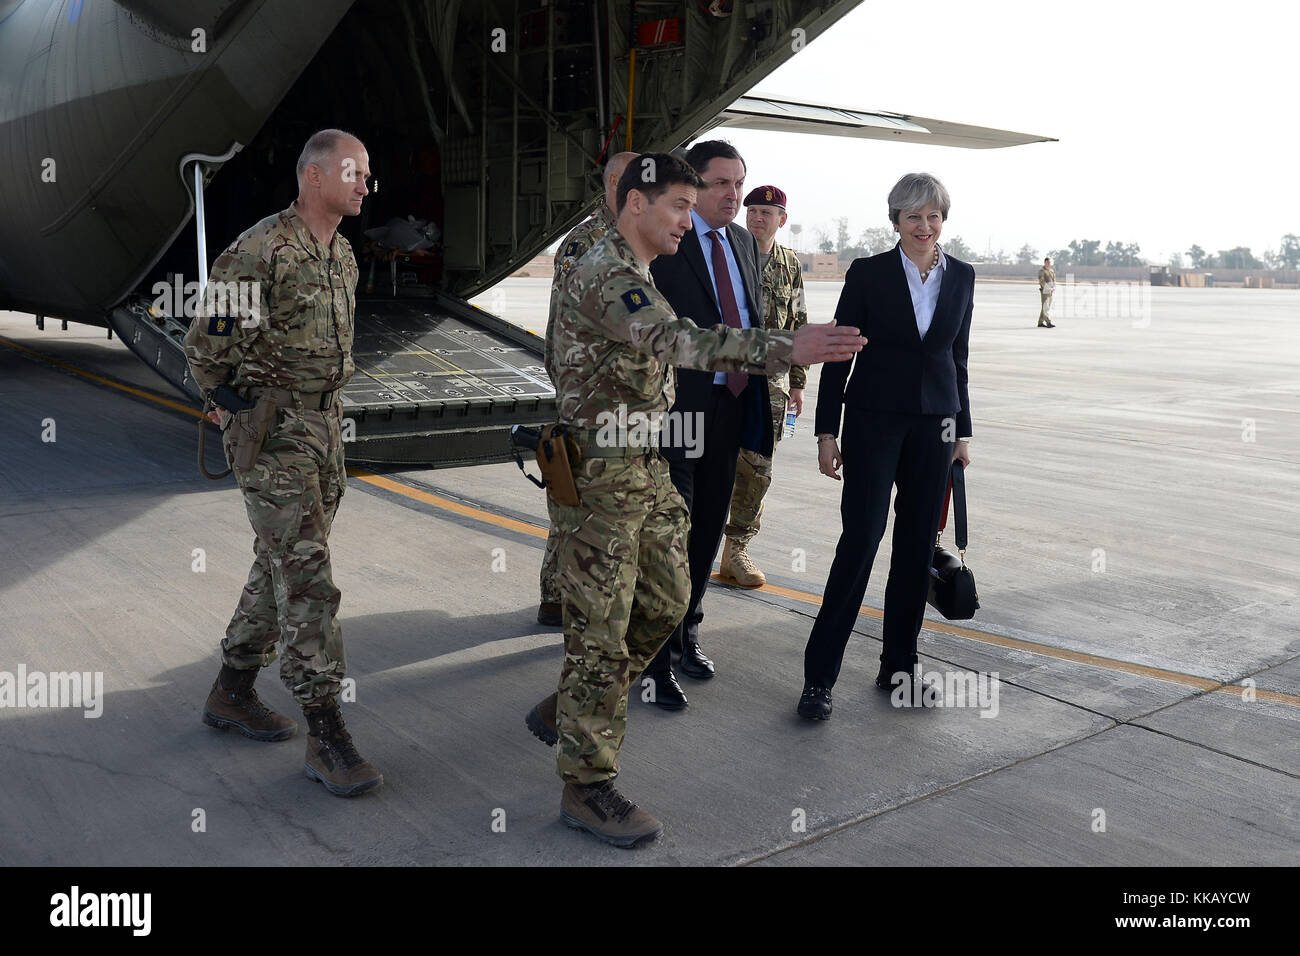 Prime Minister Theresa May arrives at Camp Taji near Baghdad, Iraq, during her visit to the Middle East. - Stock Image